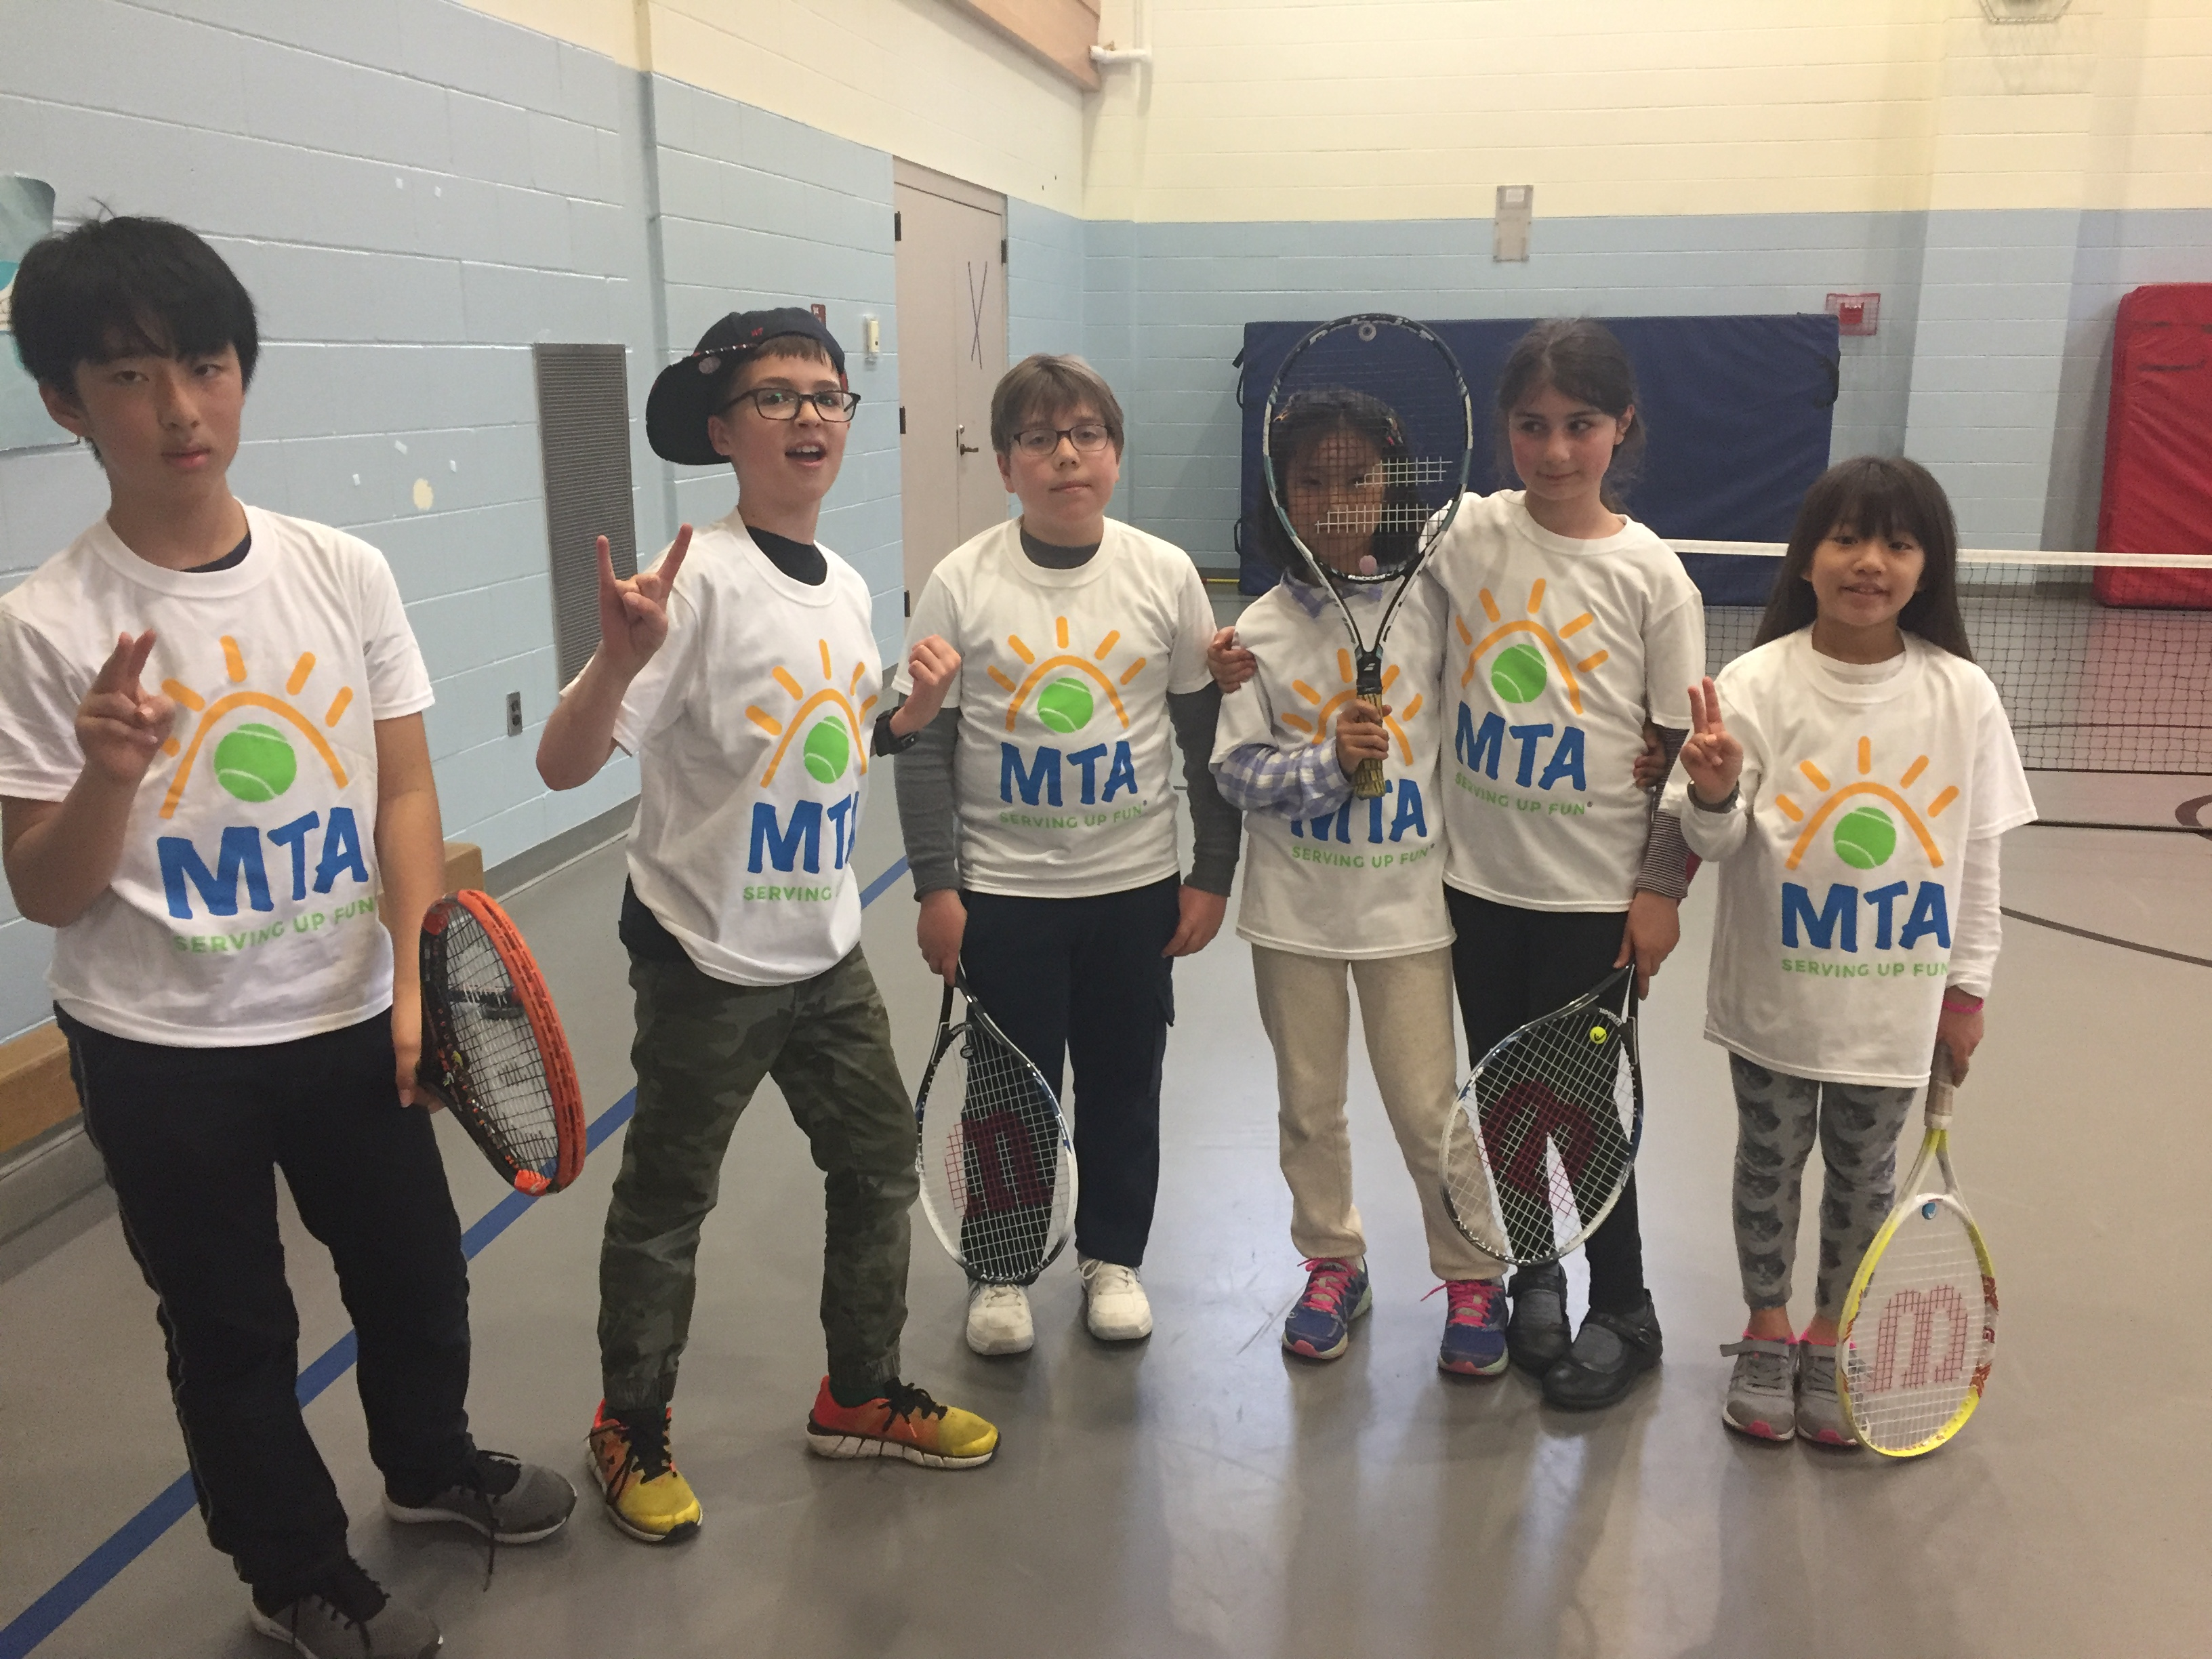 MTA with the Fairfield YMCA (ages 3 - 4)